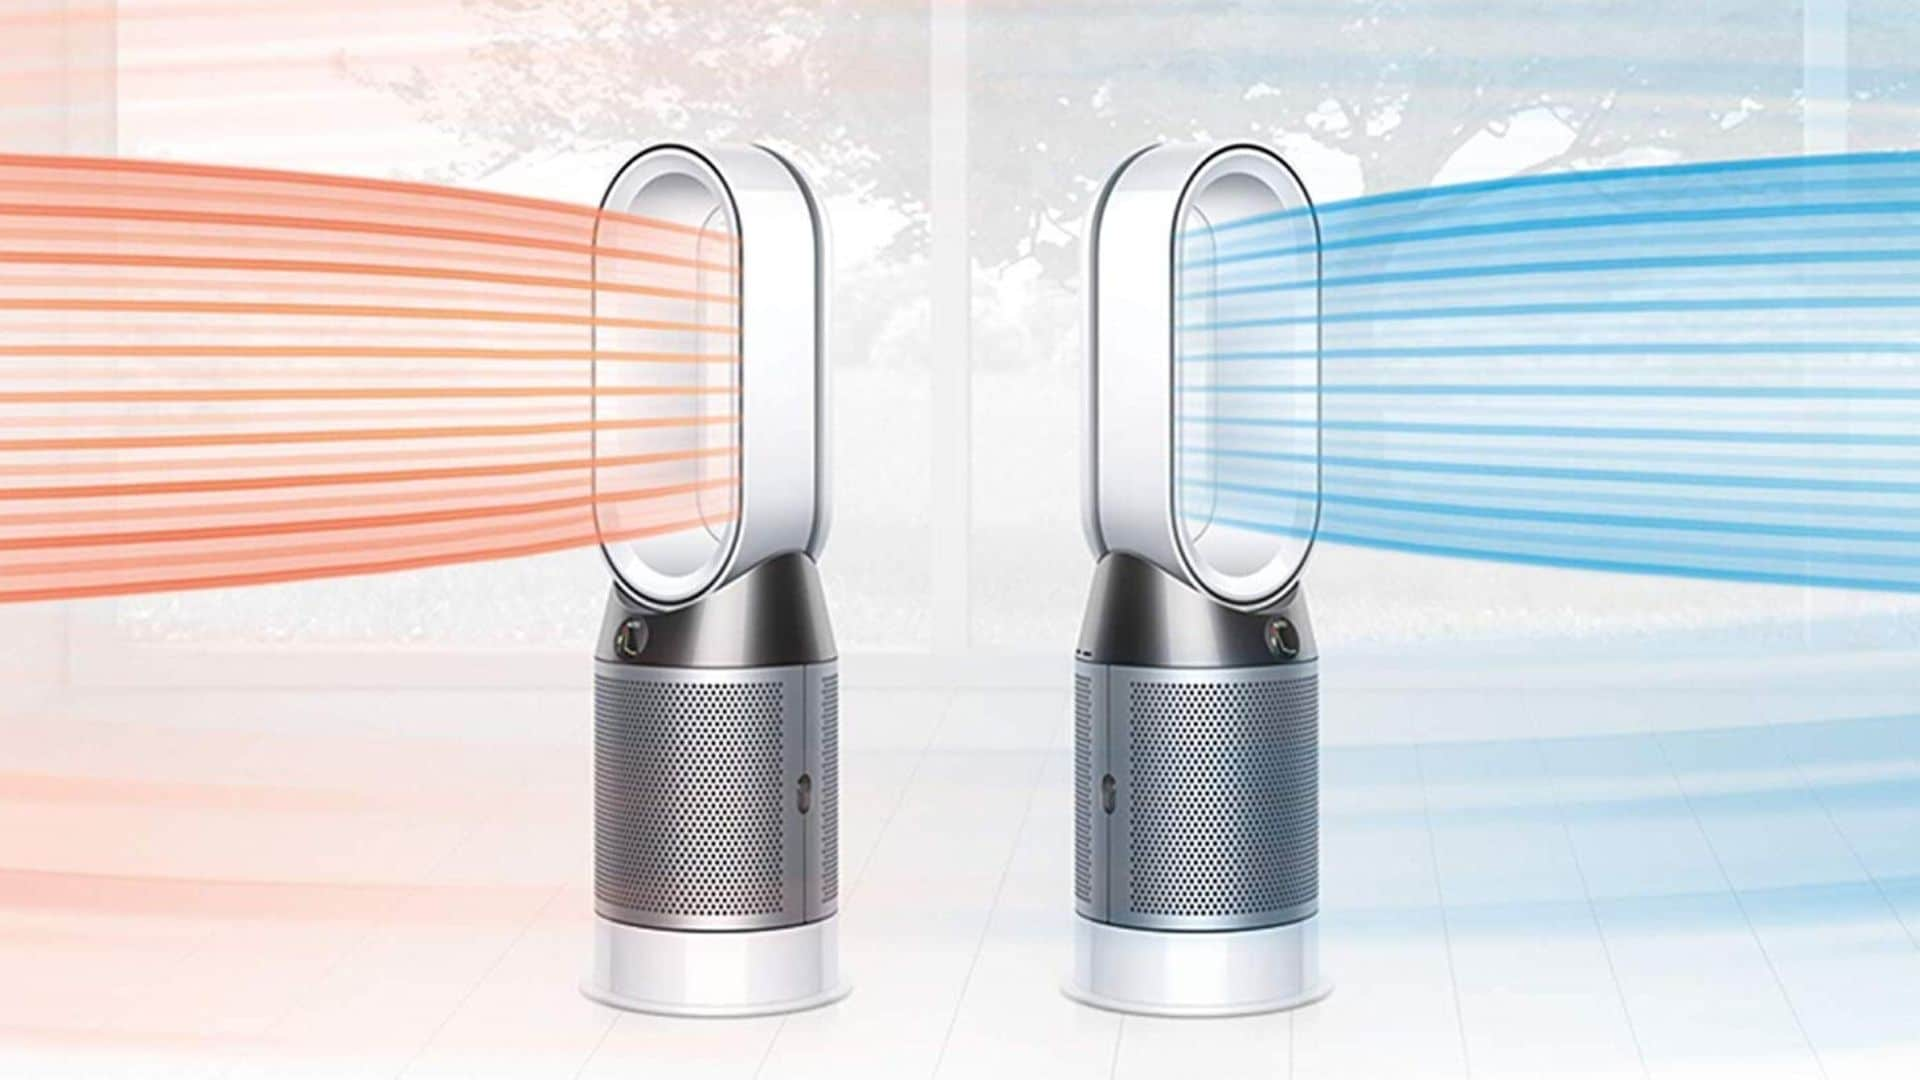 product image of hot and cold dyson features